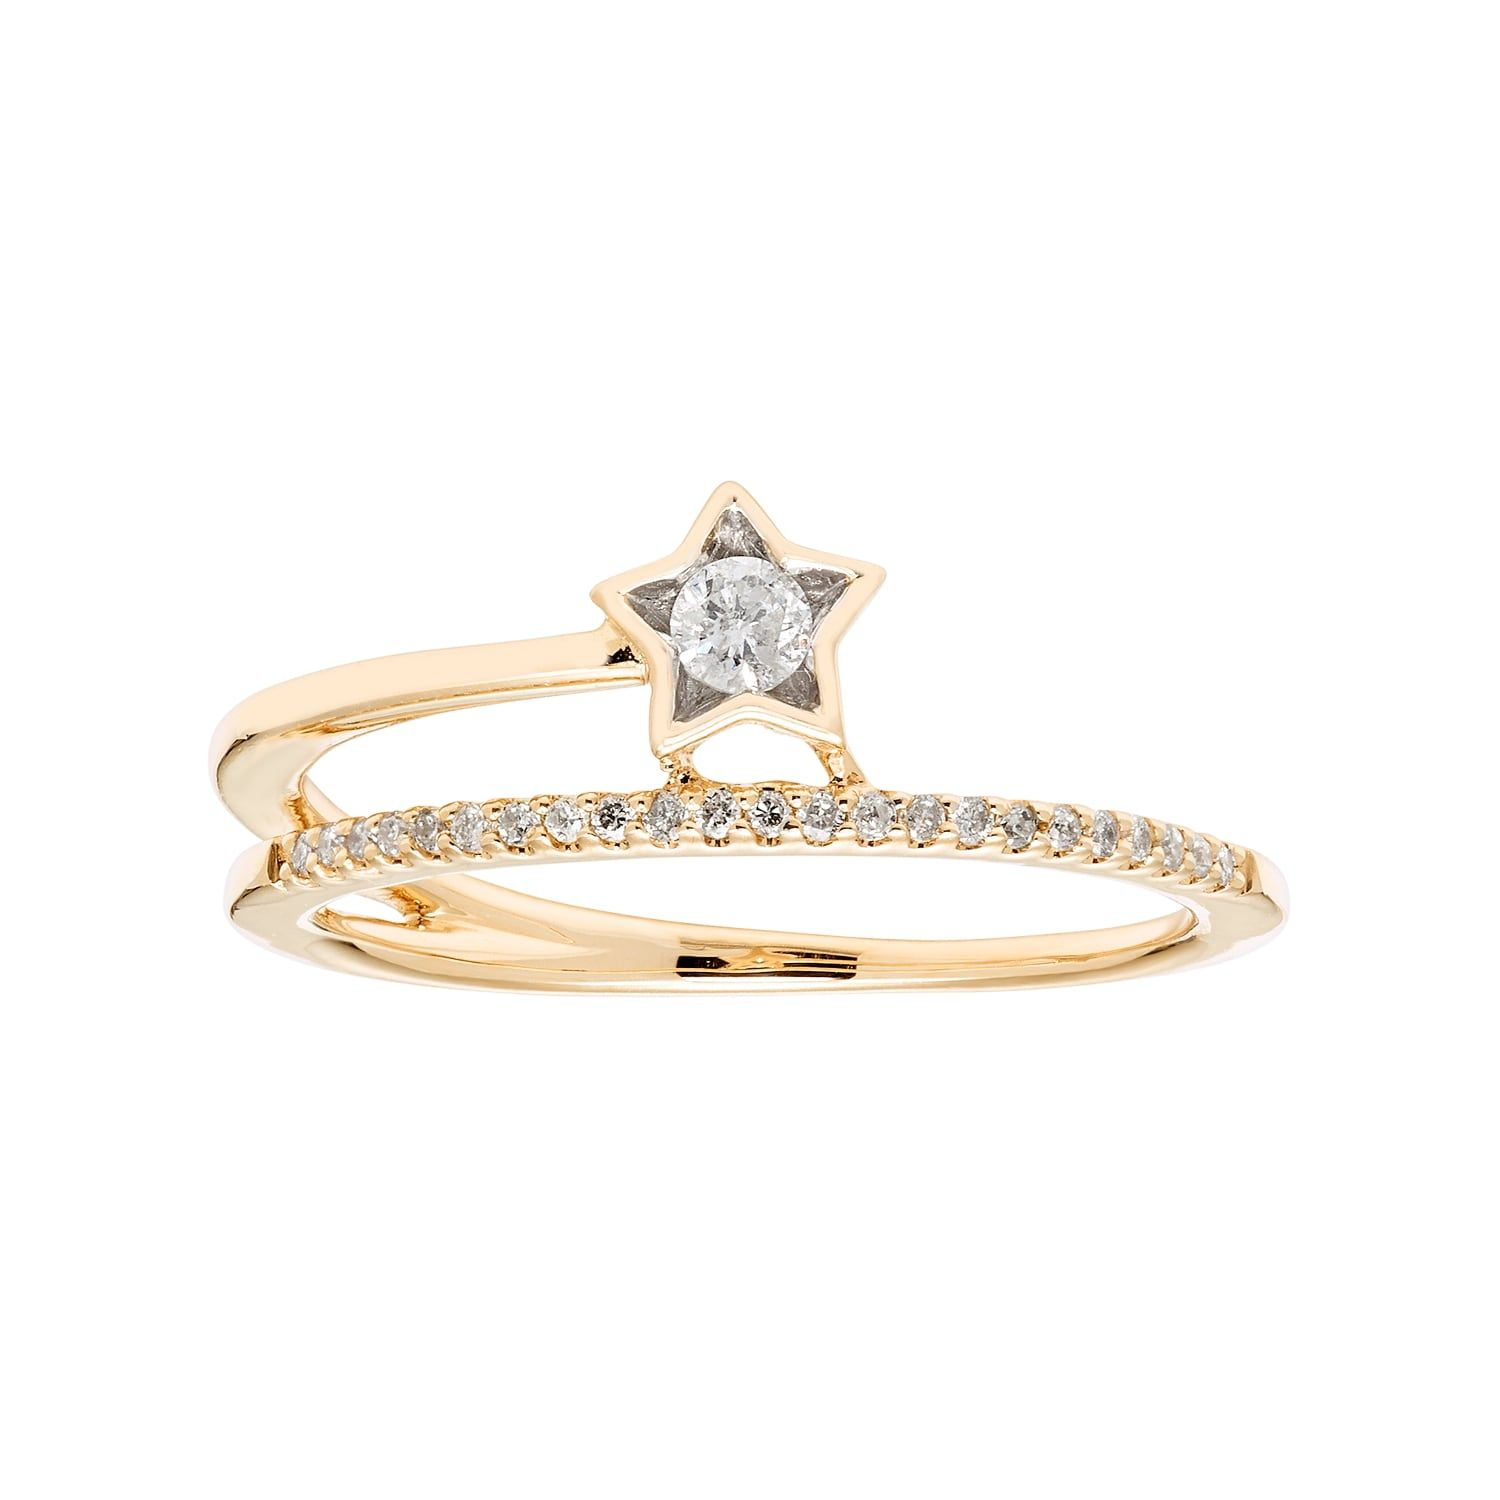 10k Gold 1 6 Carat T W Diamond Star Ring Diamond Star Star Ring 10k Gold